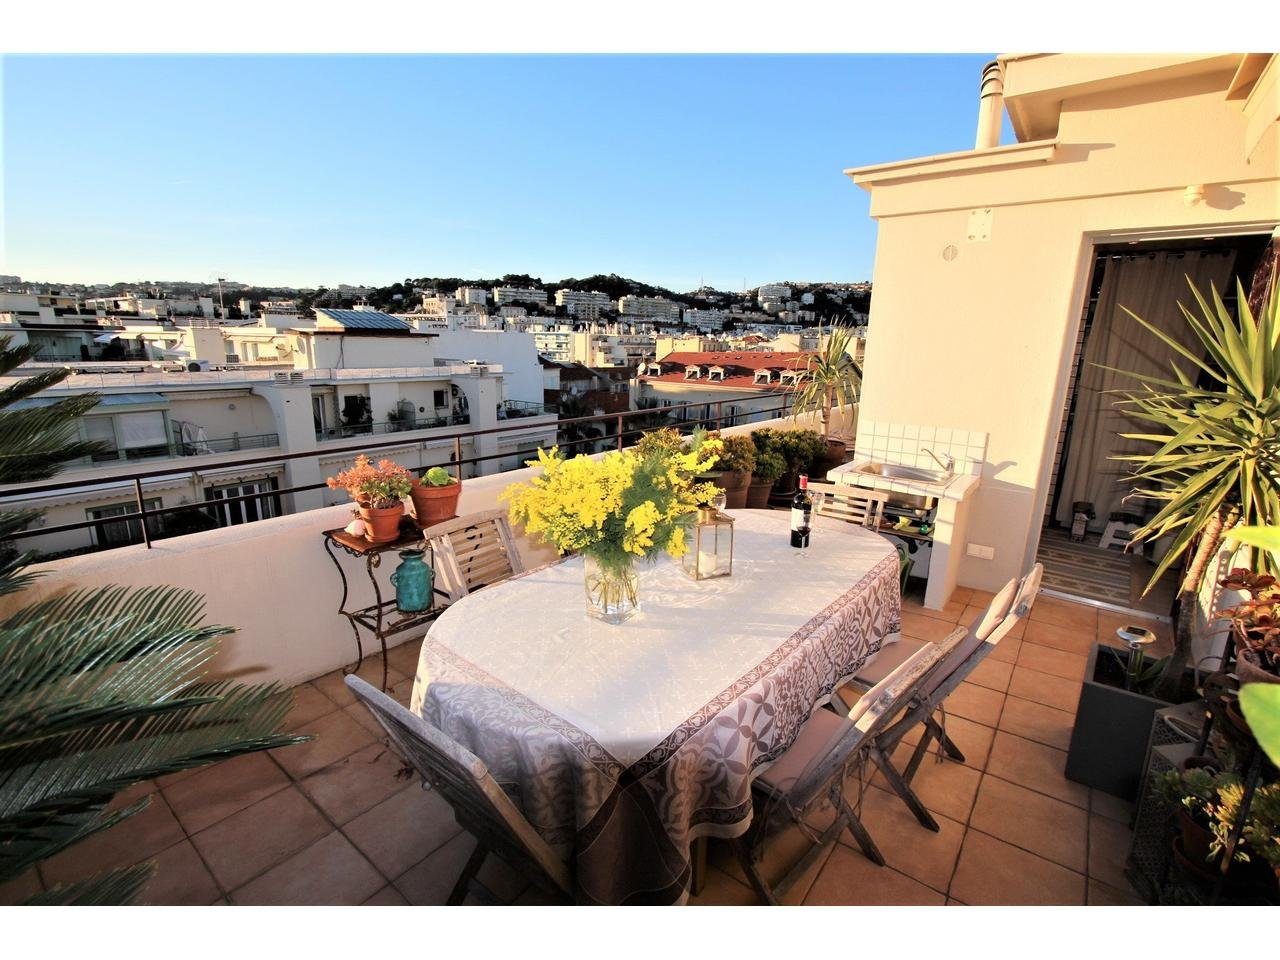 Appartement  2 Rooms 41m2  for sale   360 000 €